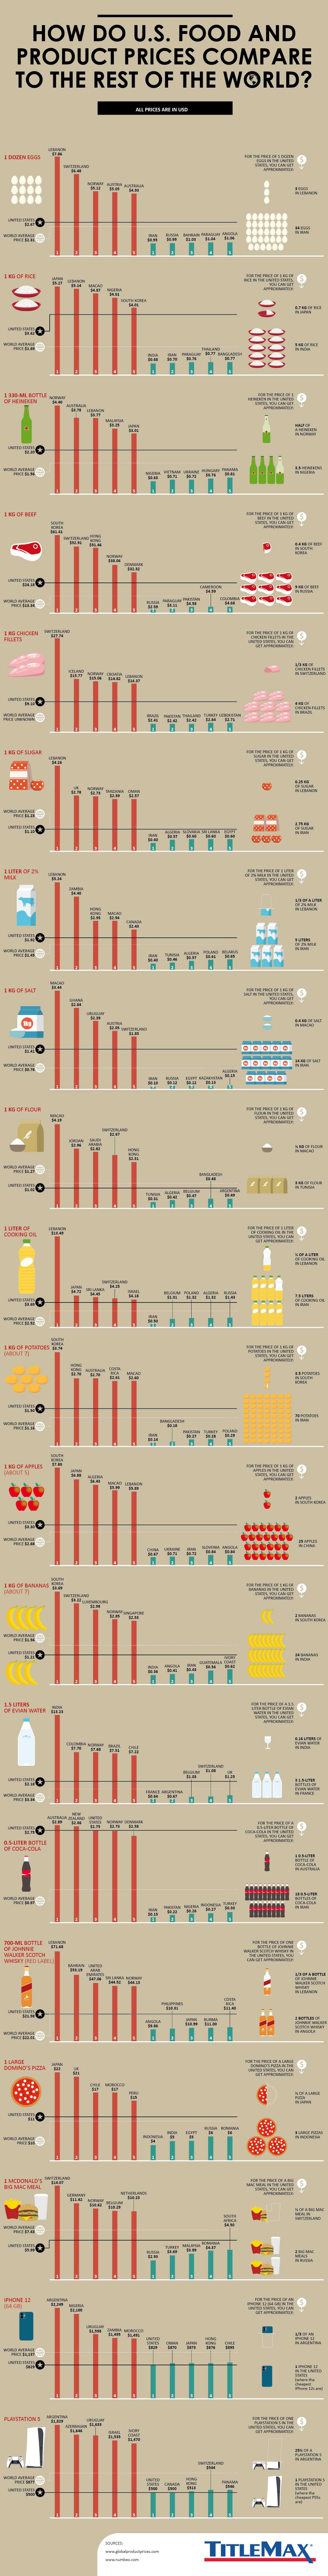 How U.S. Food and Product Prices Compare to the Rest of the World